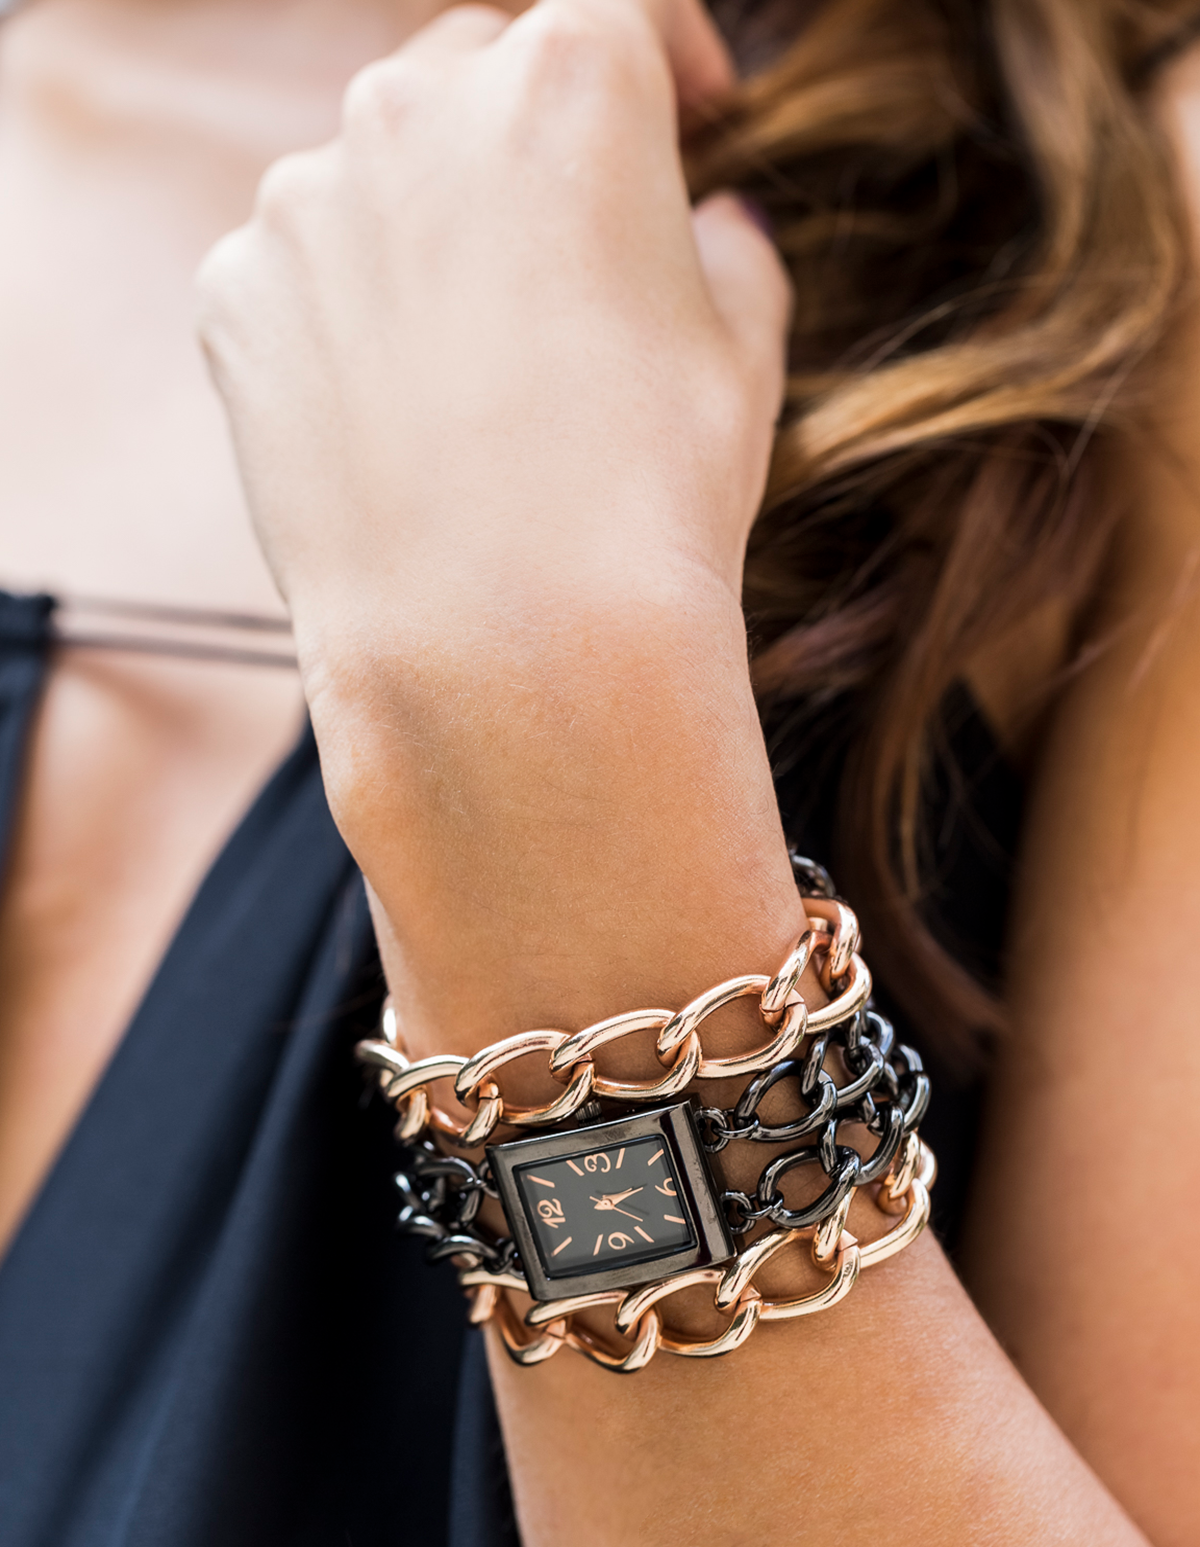 Chain Watch Bracelet